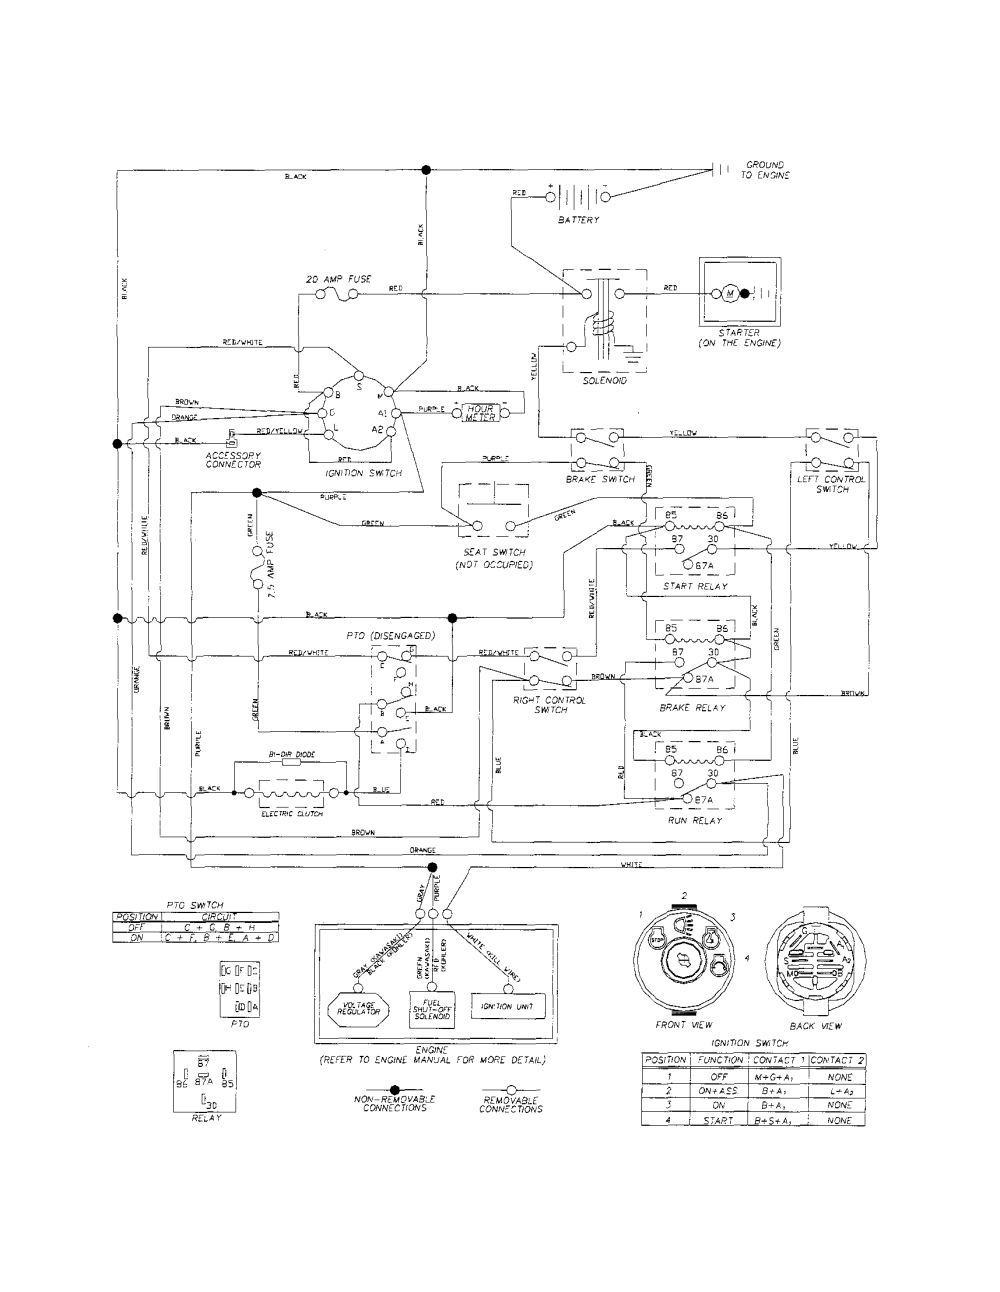 medium resolution of husqvarna wiring schematic blog wiring diagram wiring diagram for husqvarna riding mower husqvarna wire diagram wiring